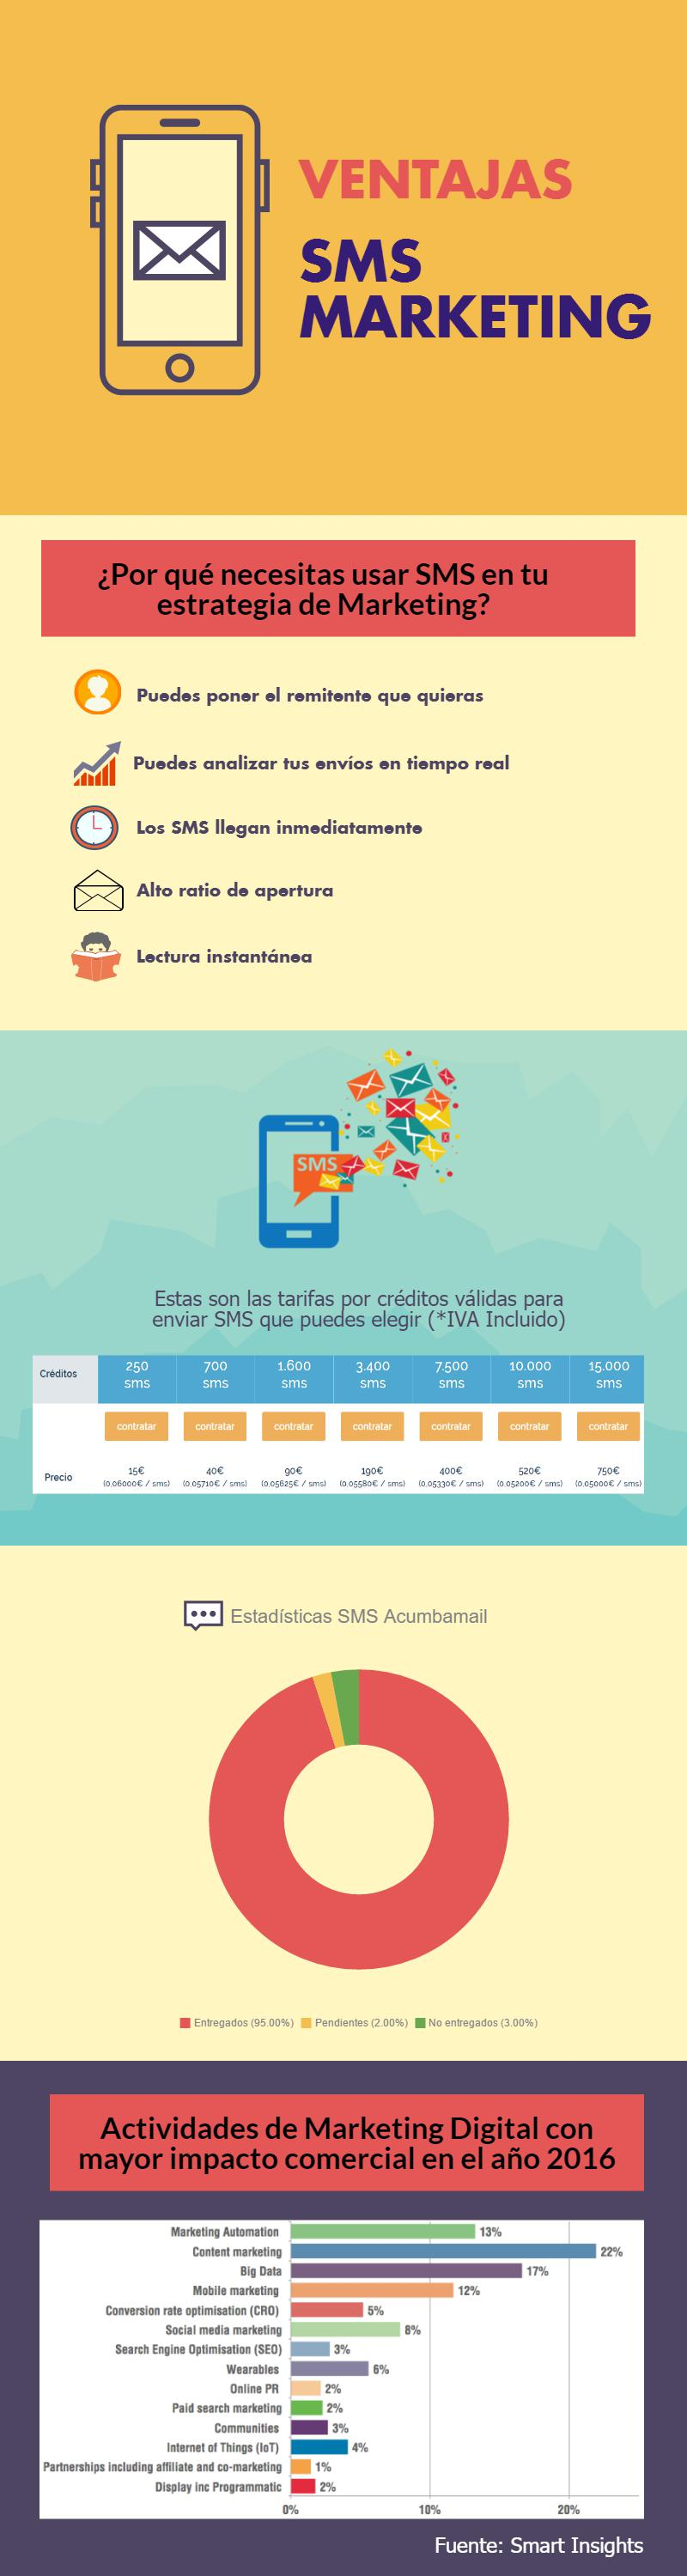 Infografía SMS marketing